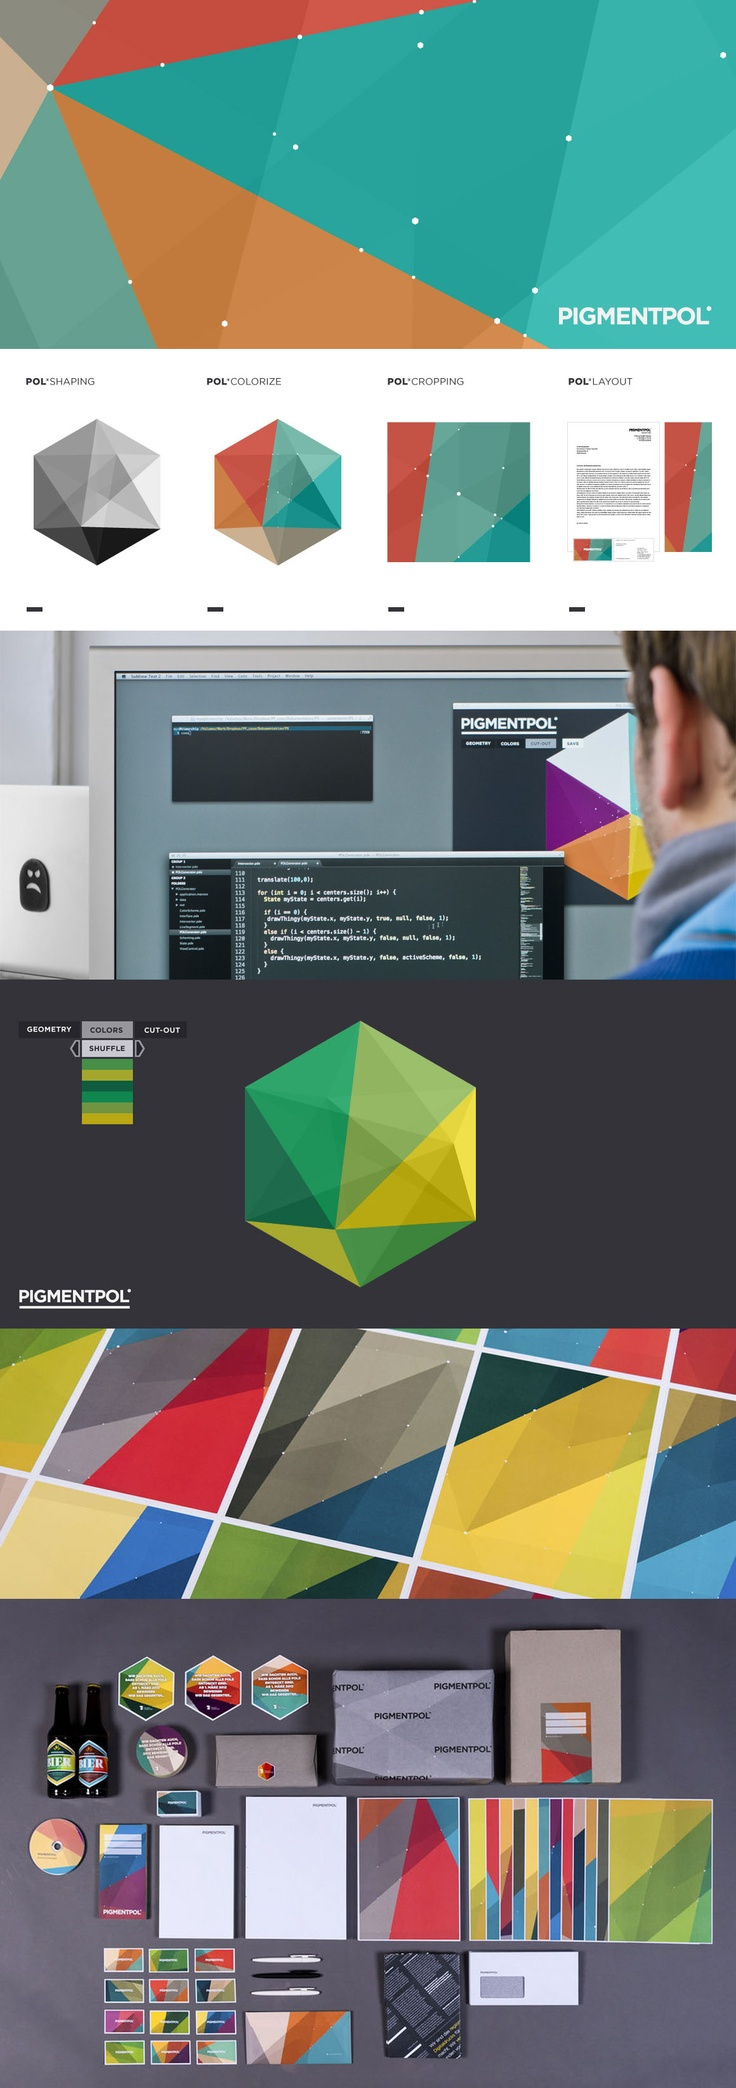 Pigmentopol by Atmodesign + Feld / 2012 / The hexagon functions as a key object for the geometry, within which additional intersections can be arranged. Following a chosen color scheme, every segment is colorized and all intersections are highlighted. Before exporting the graphic as a PDF file, the ability to scale and crop to a desired area is given. The generated graphics can be further processed or simply used within the regular layout process / #generative #processing